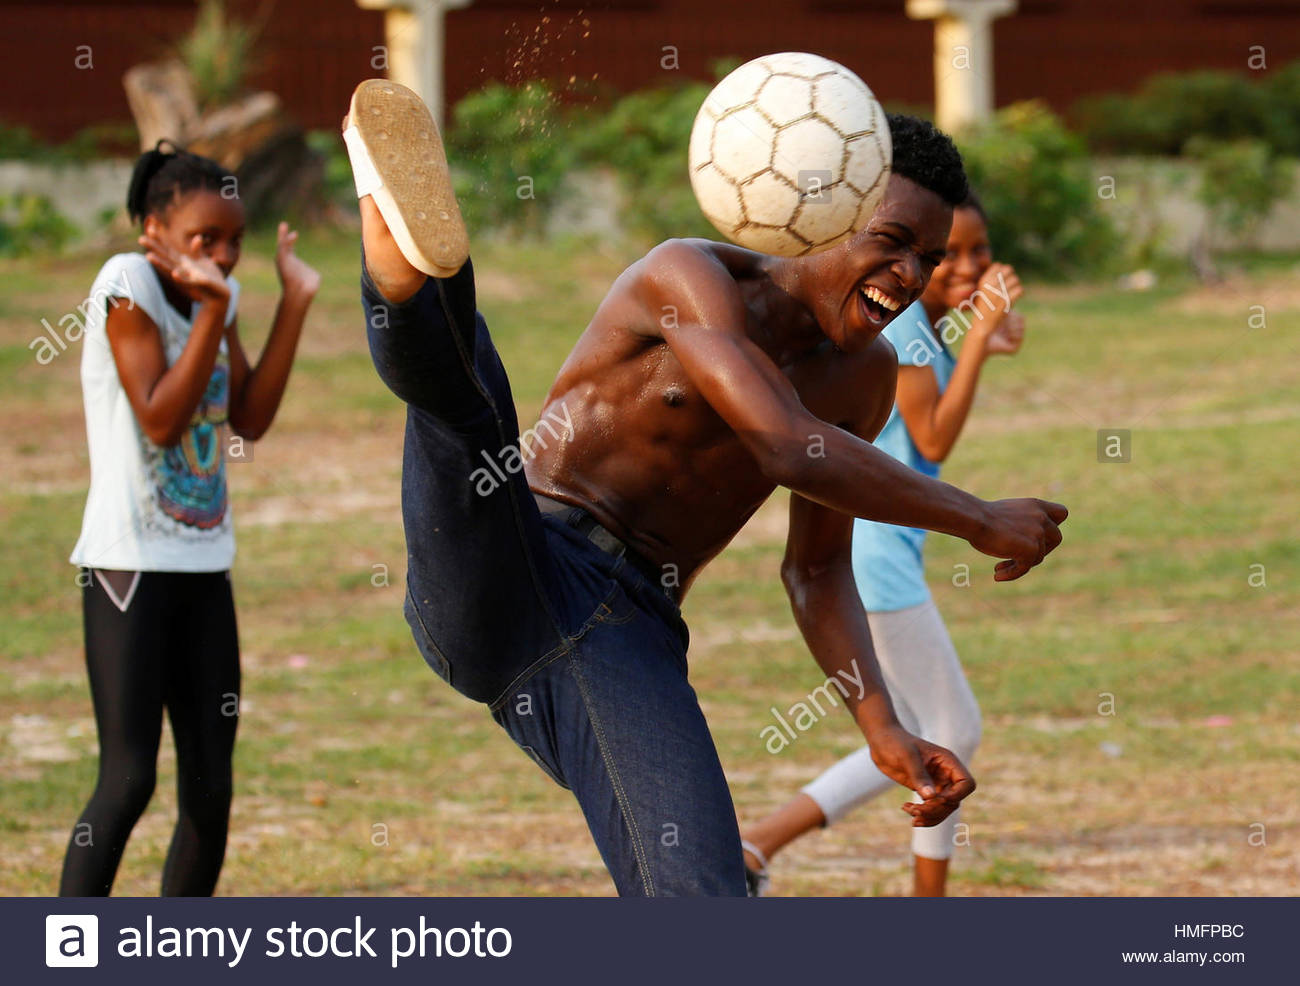 Youths practice their soccer skills at a park ahead of the African Nations Cup soccer final in Libreville, Gabon, Stock Foto